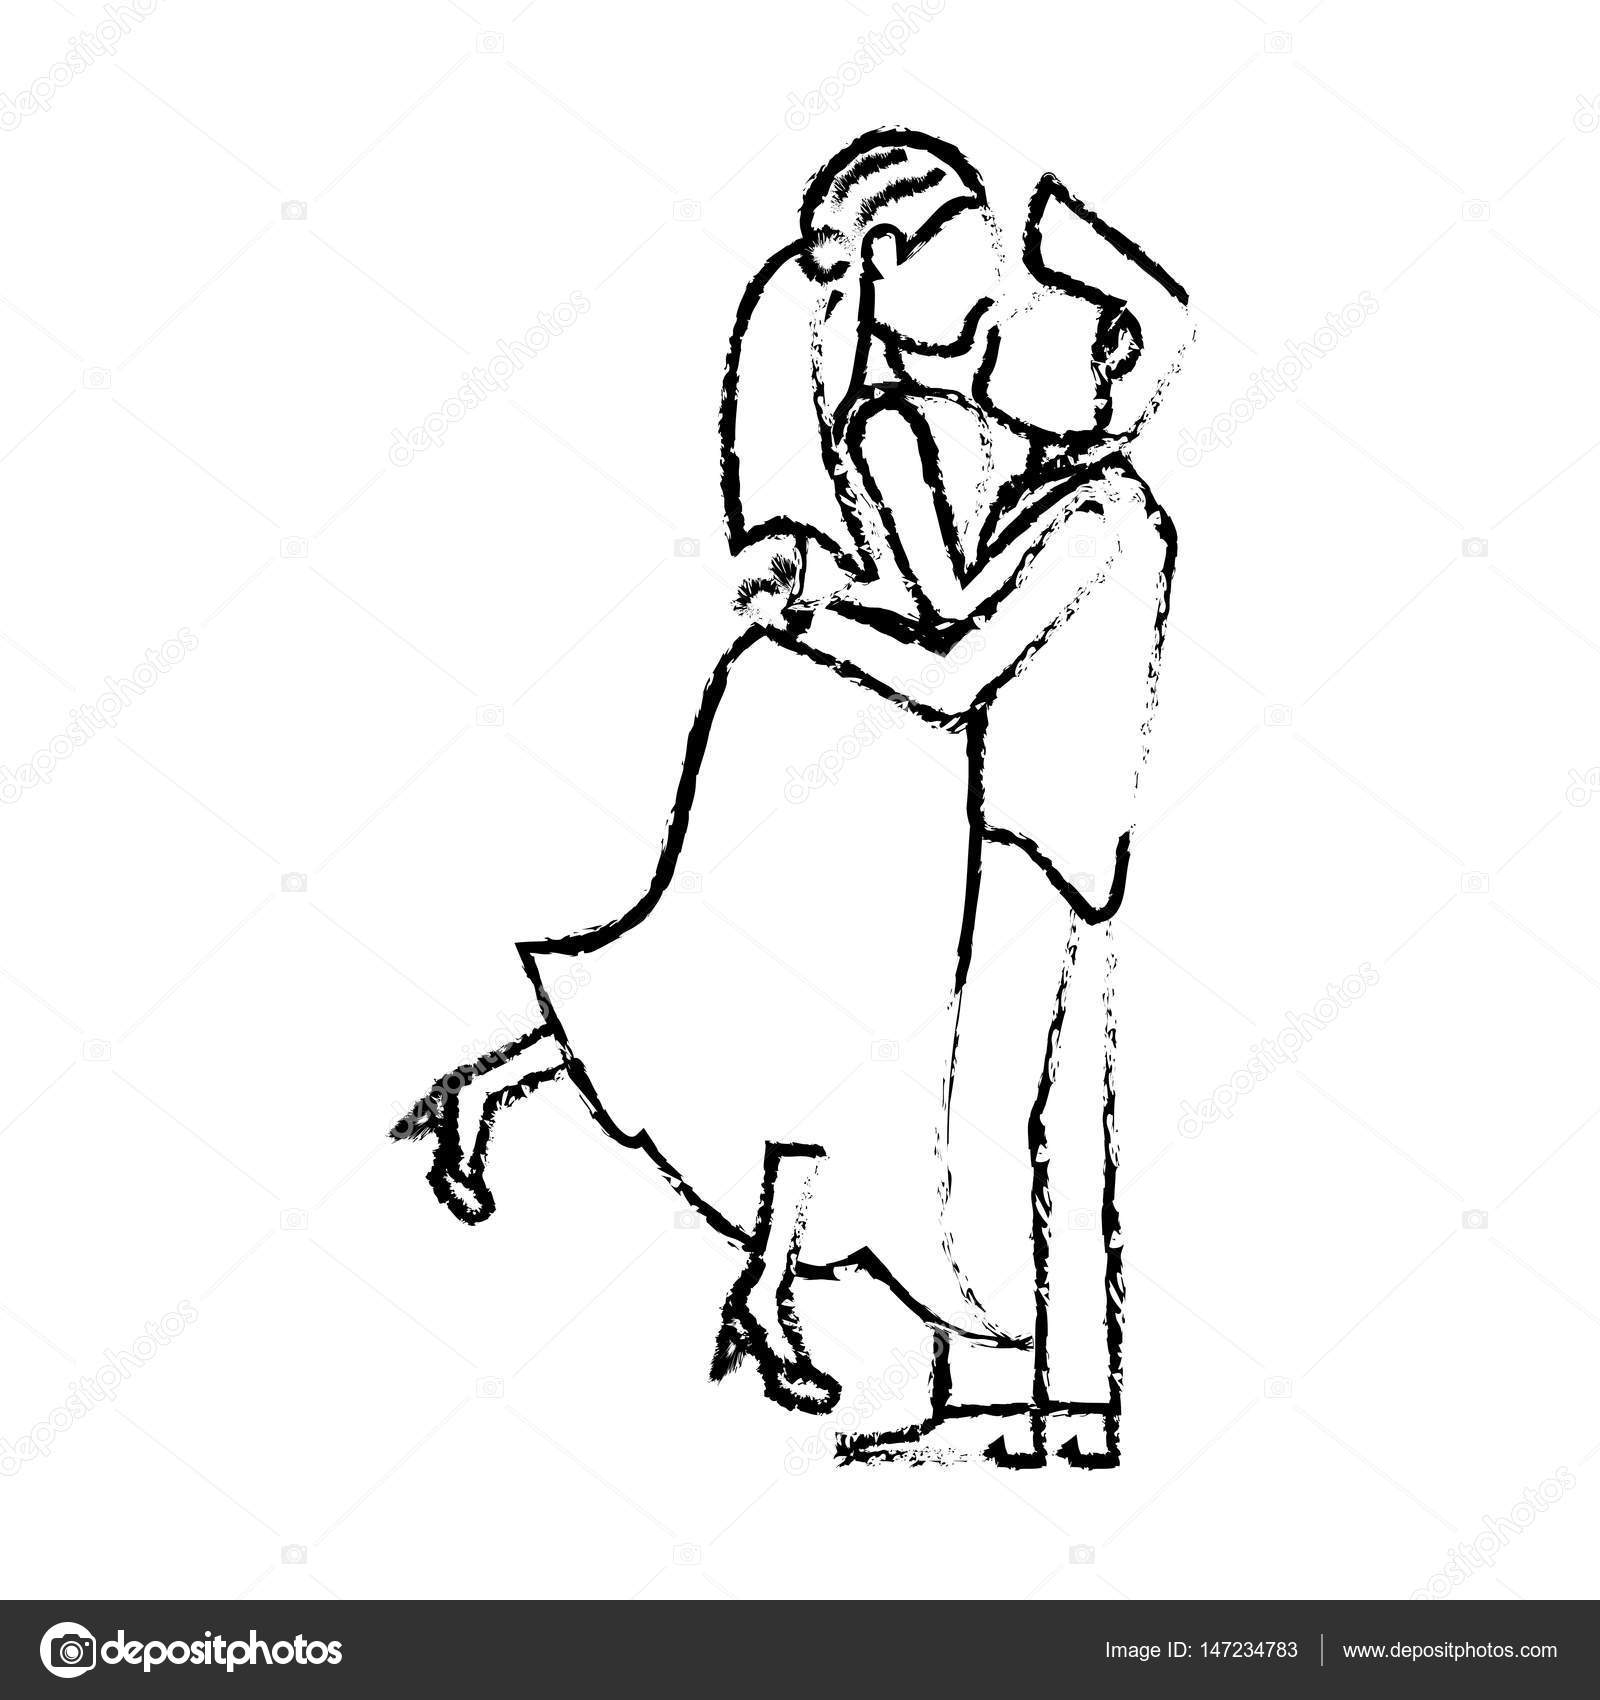 Couple Wedding Love Romance Sketch Stock Vector C Jemastock 147234783